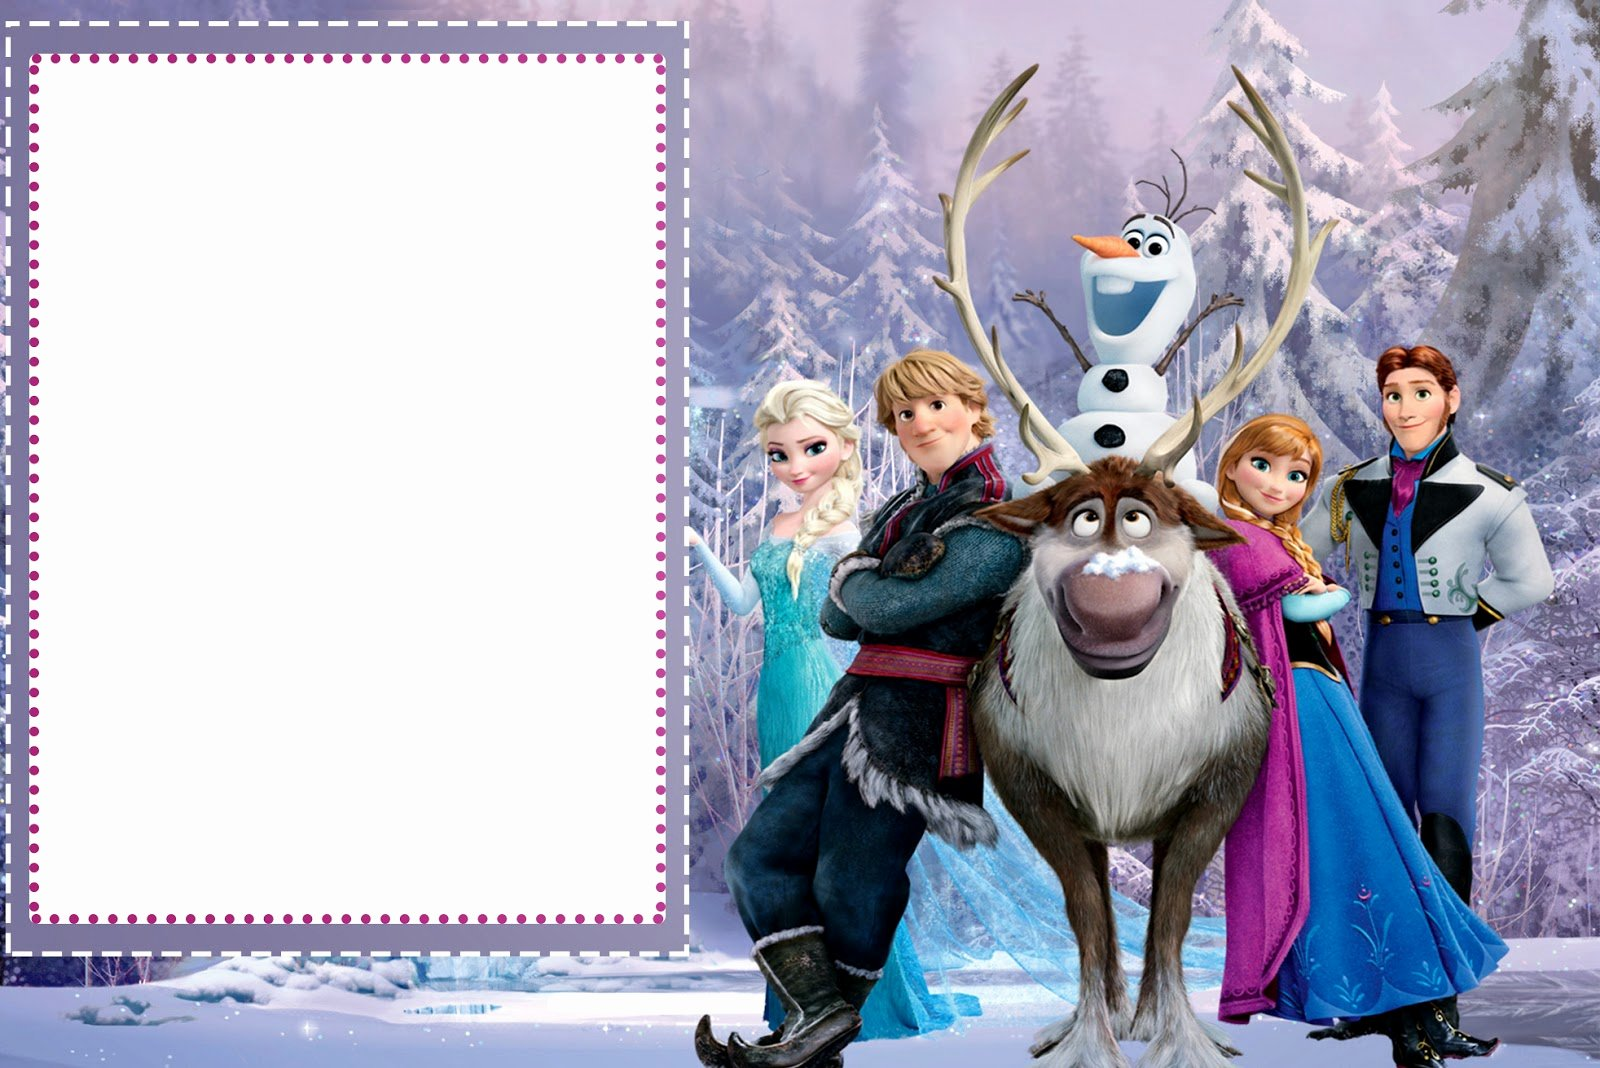 Frozen Invitation Template Free Unique Frozen Free Printable Cards or Party Invitations